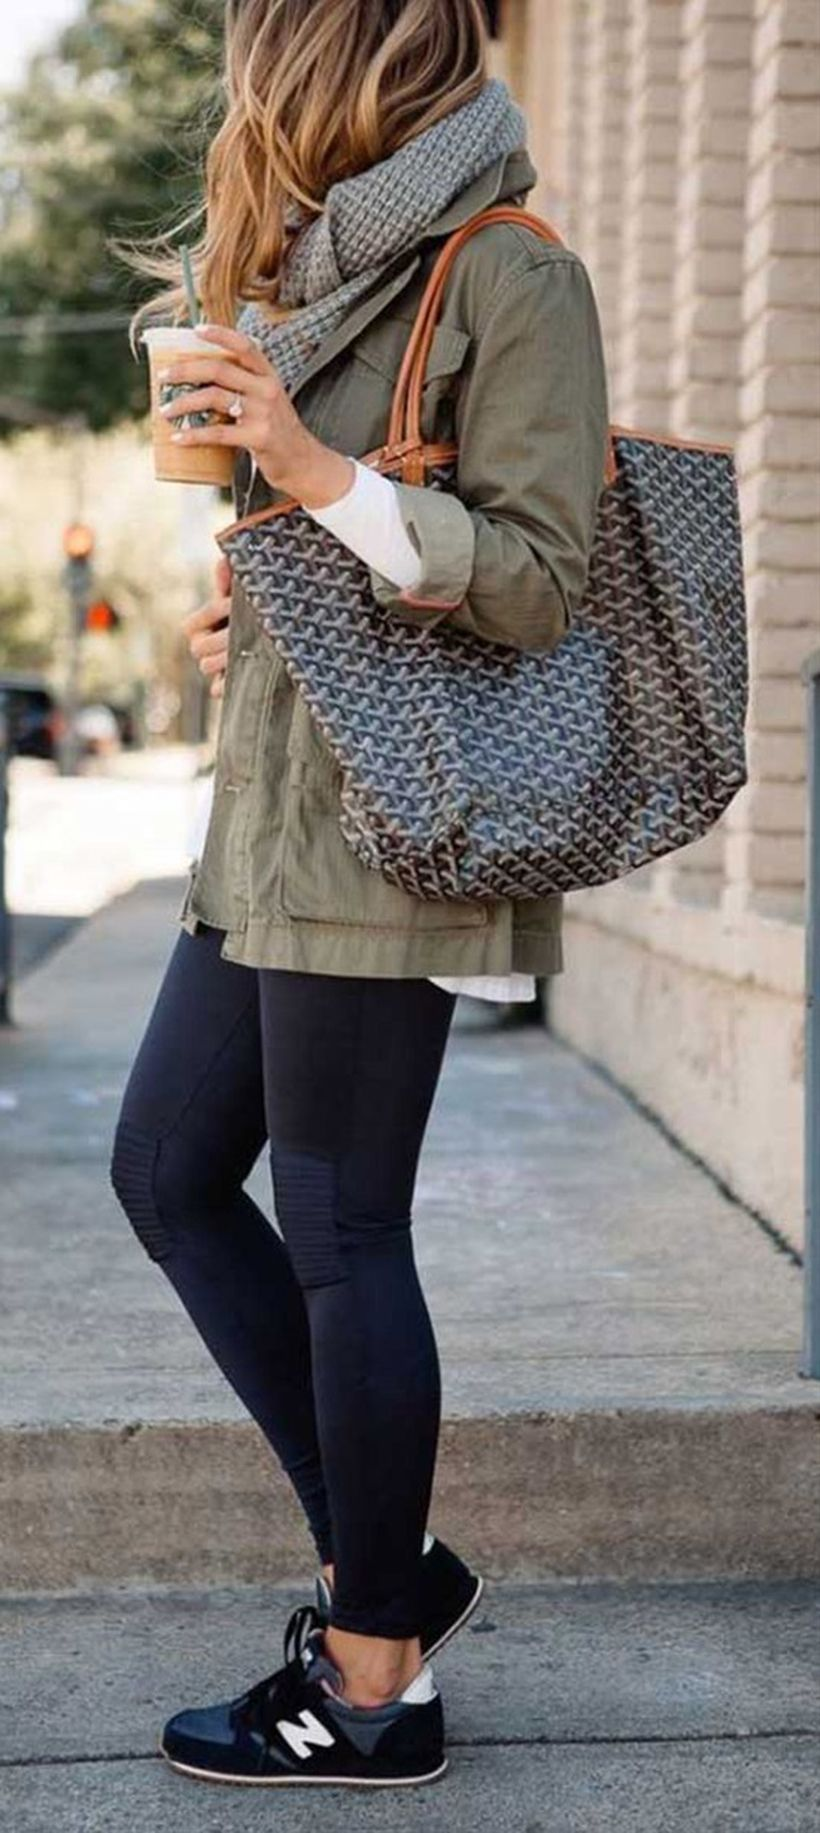 2017 fall fashions trend inspirations for work 74